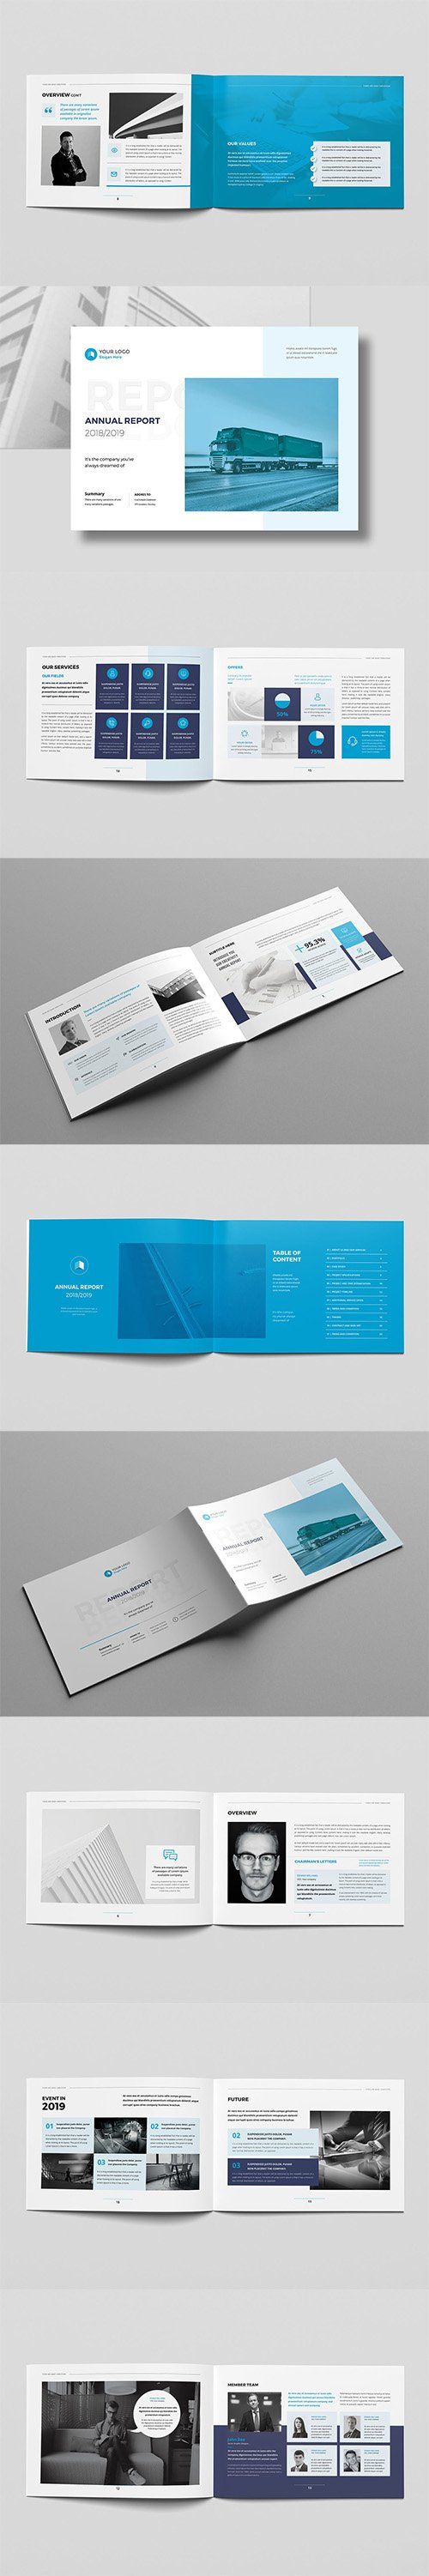 Annual Report Landscape A4